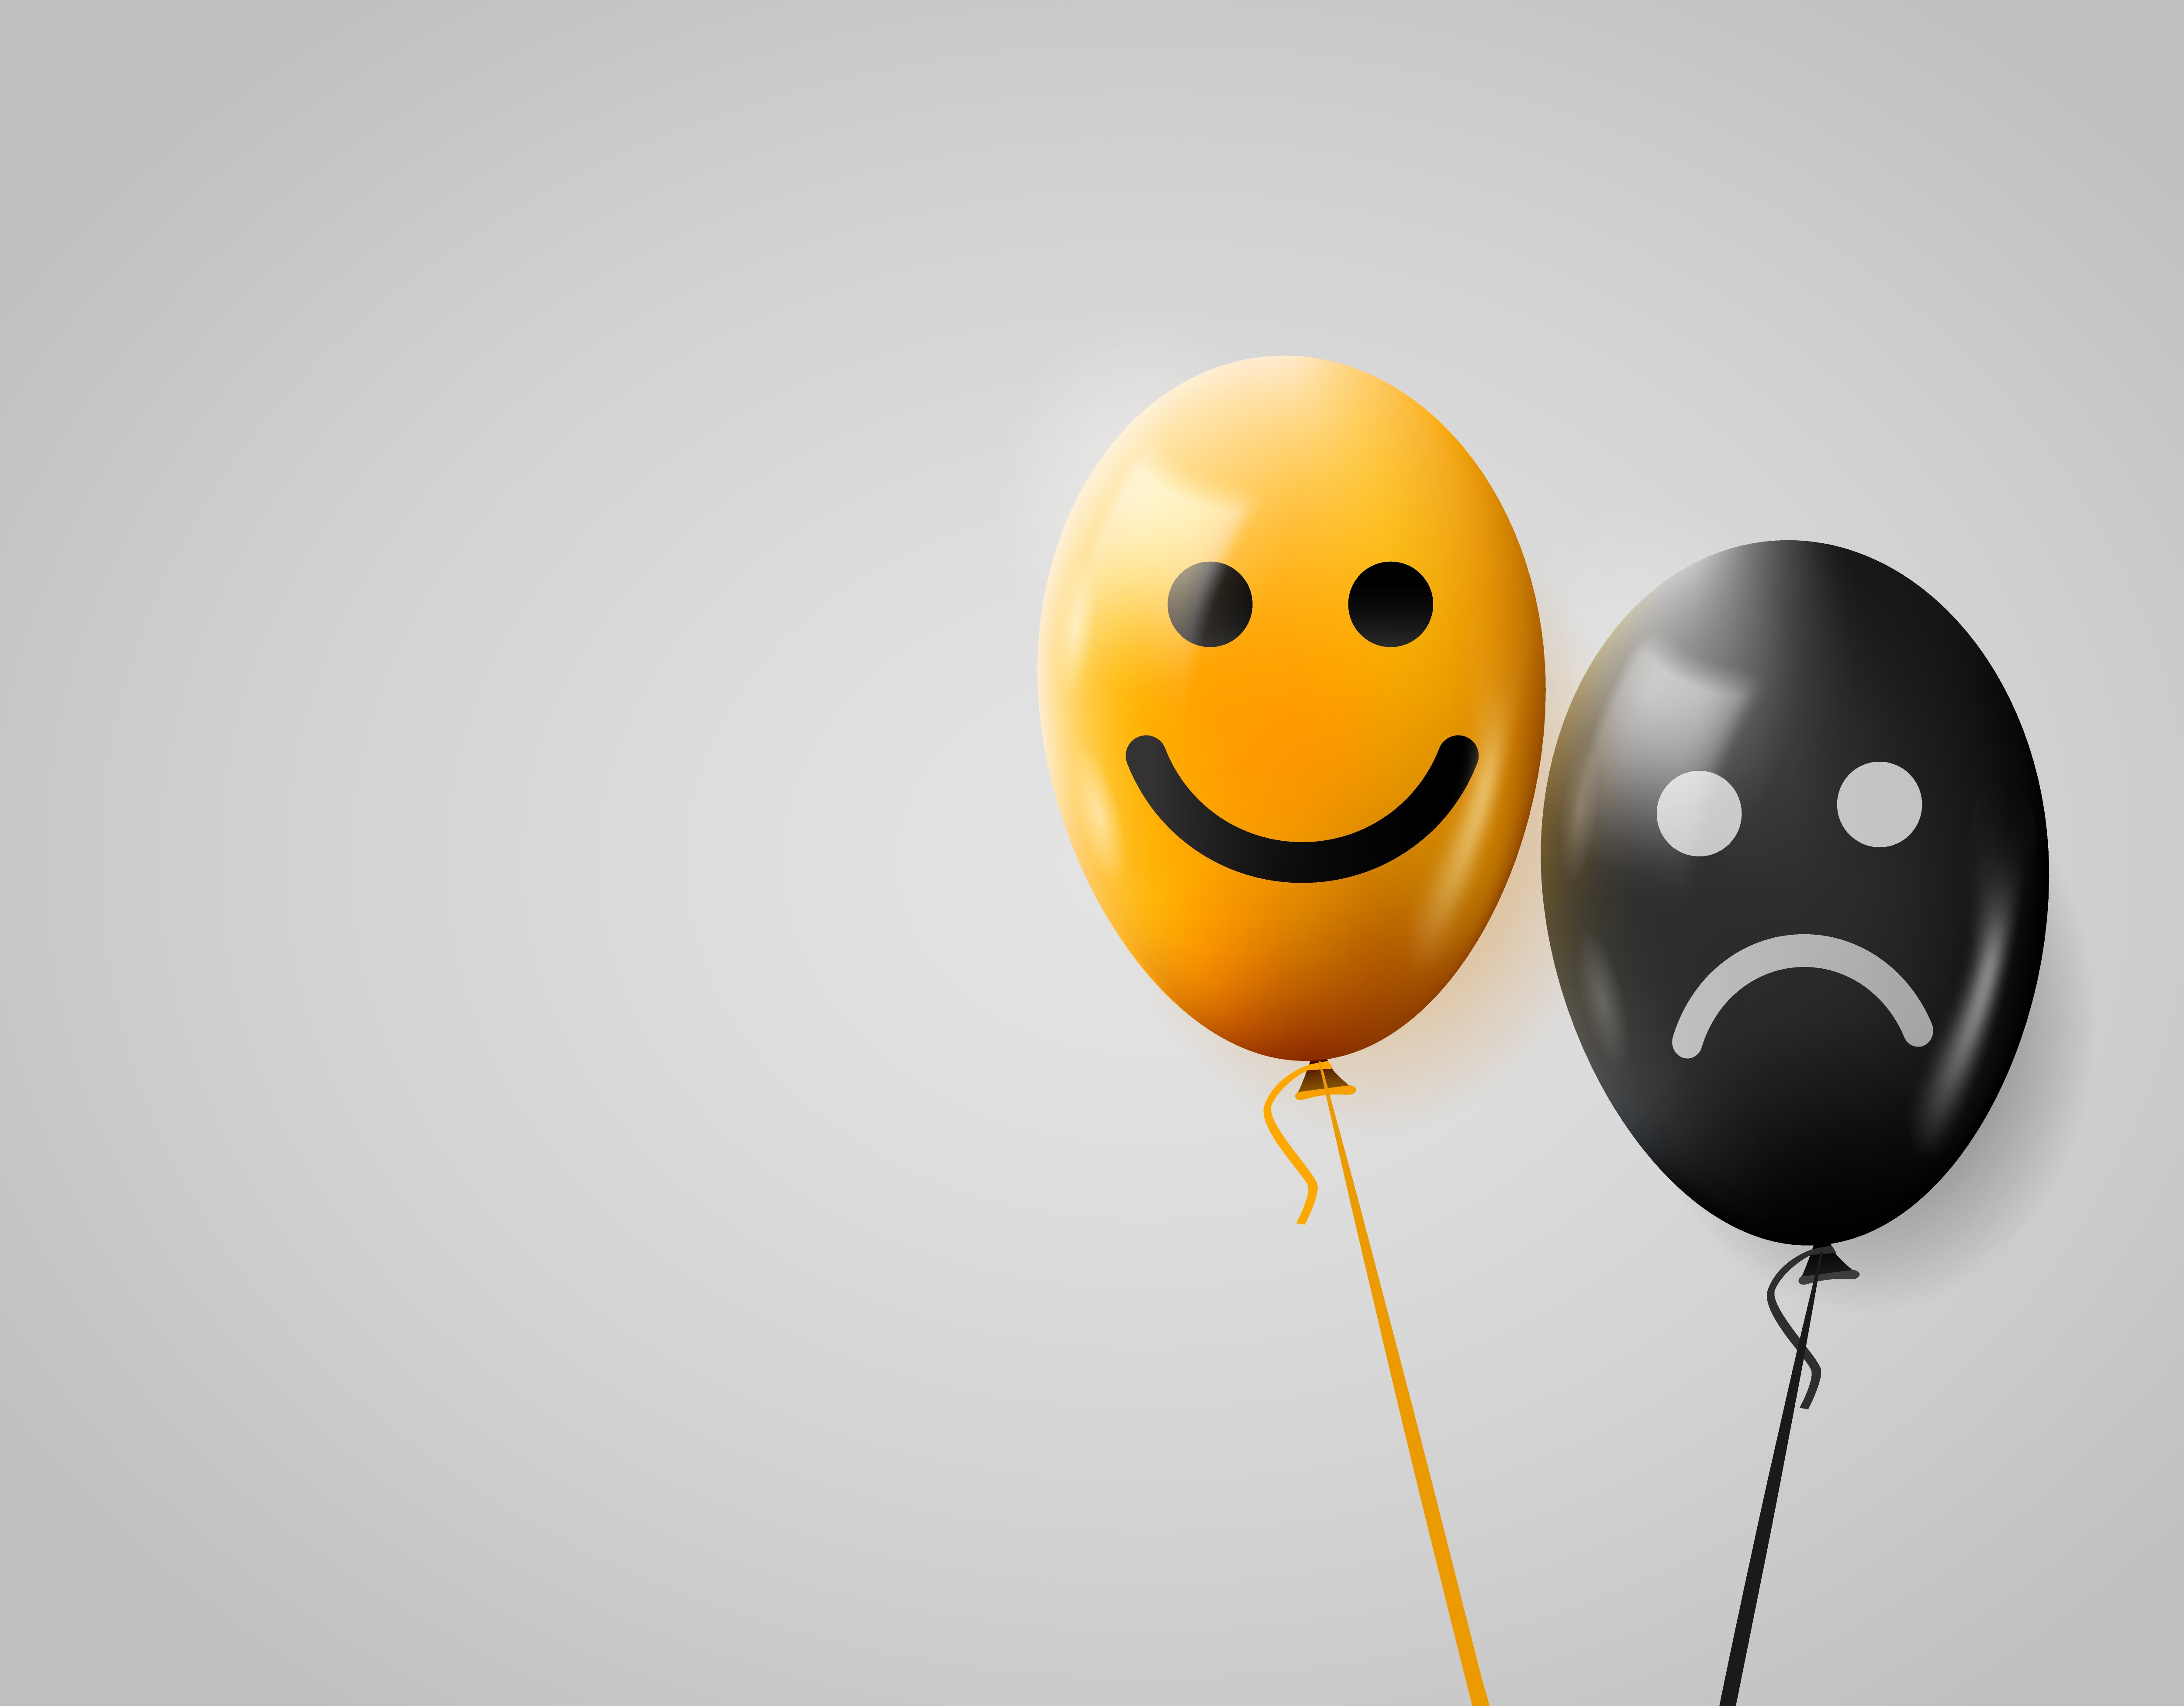 happy and sad faces on yellow and black balloons.